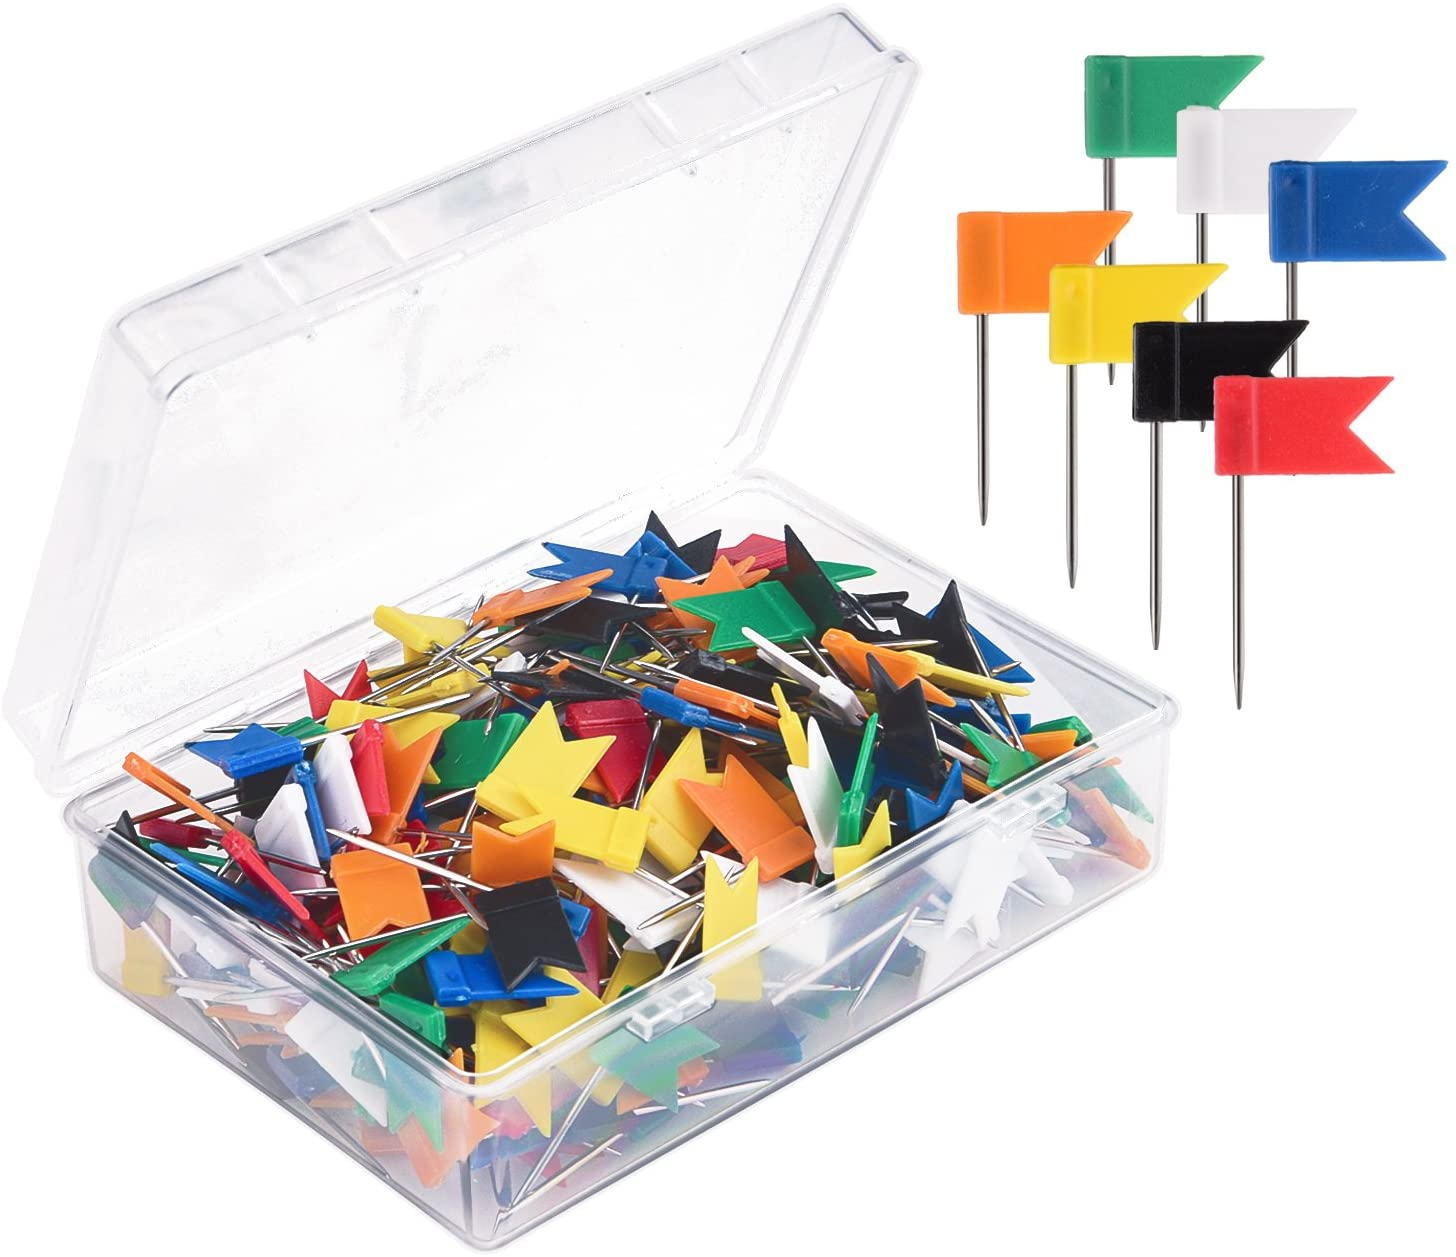 Sunmns 300 Pieces Map Flag Push Pins Tacks, Assorted 7 Colors